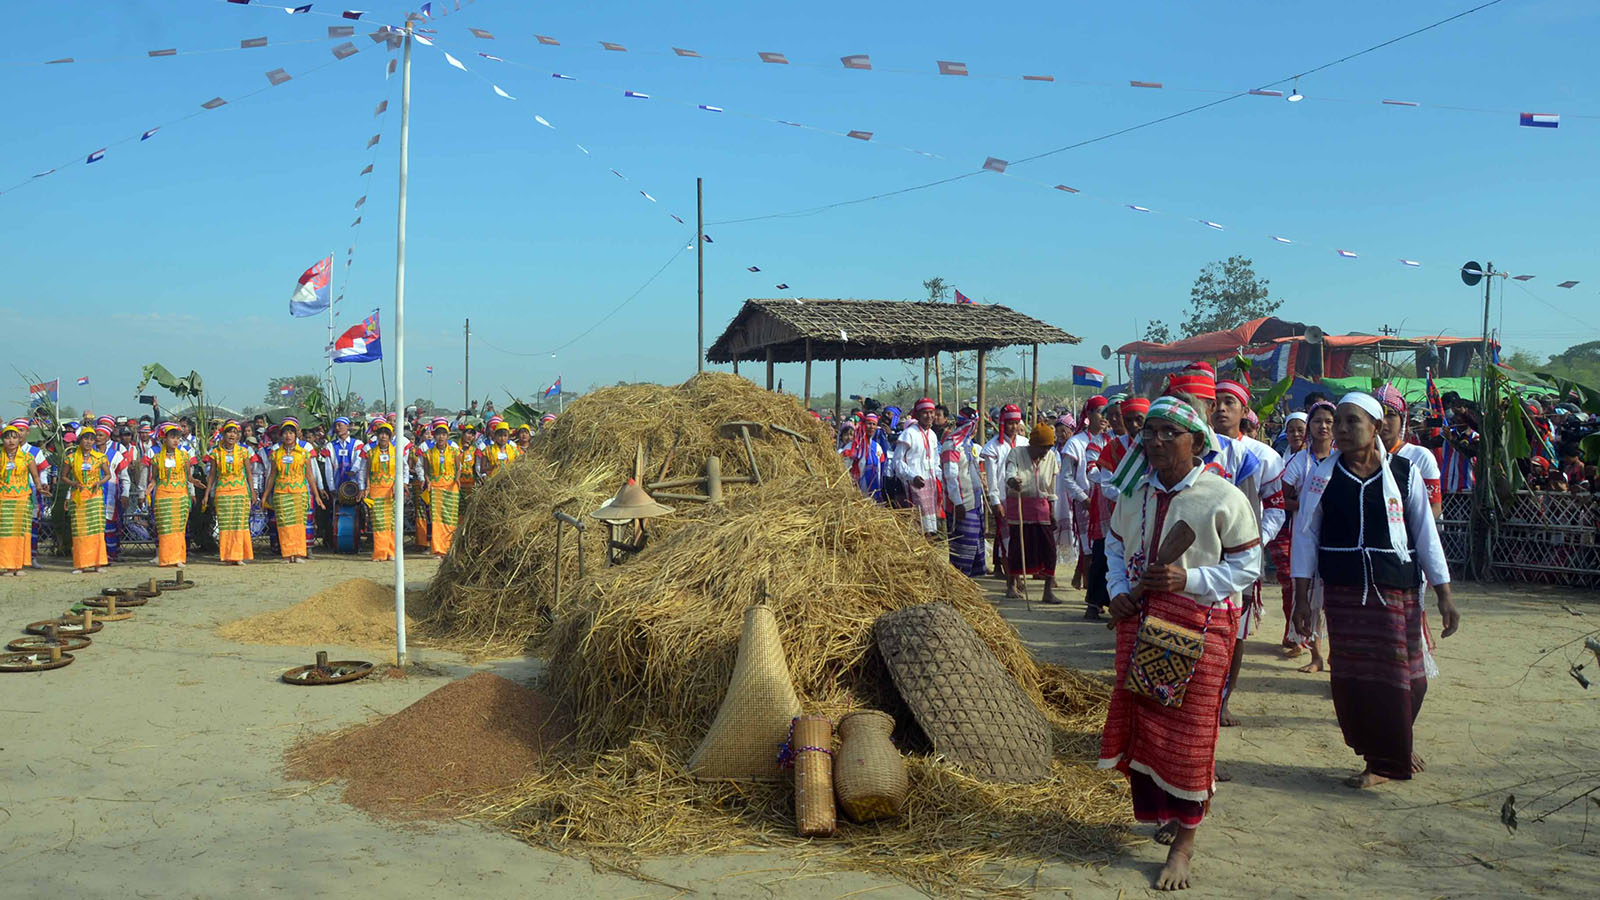 Kayin ethnic men and women participate in the Kayin New Year and harvest festival in Einme in Ayeyawady Region yesterday.